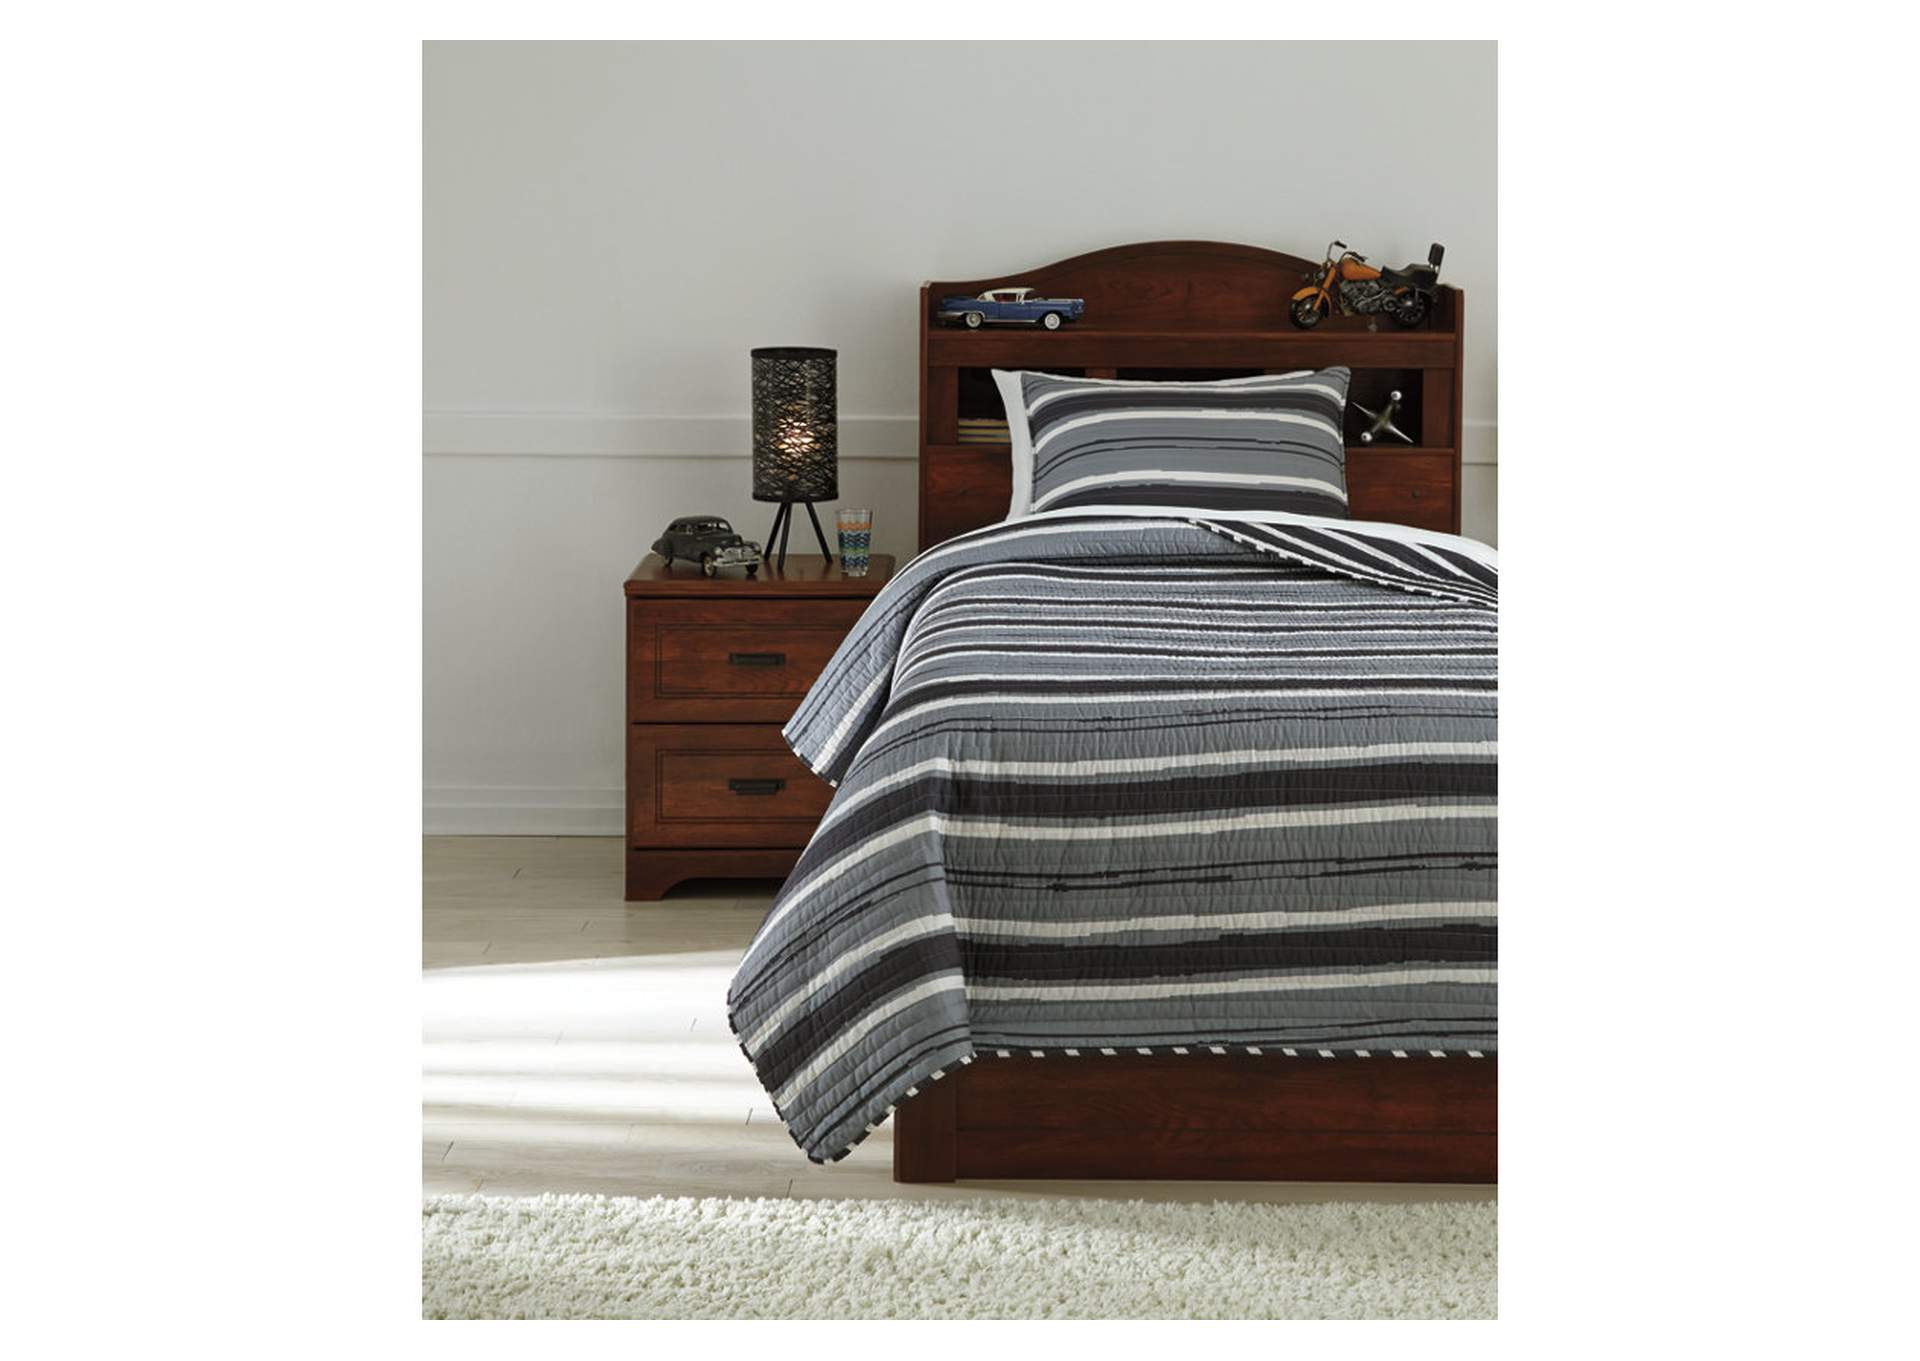 Merlin Gray/Cream Twin Coverlet Set,Signature Design By Ashley